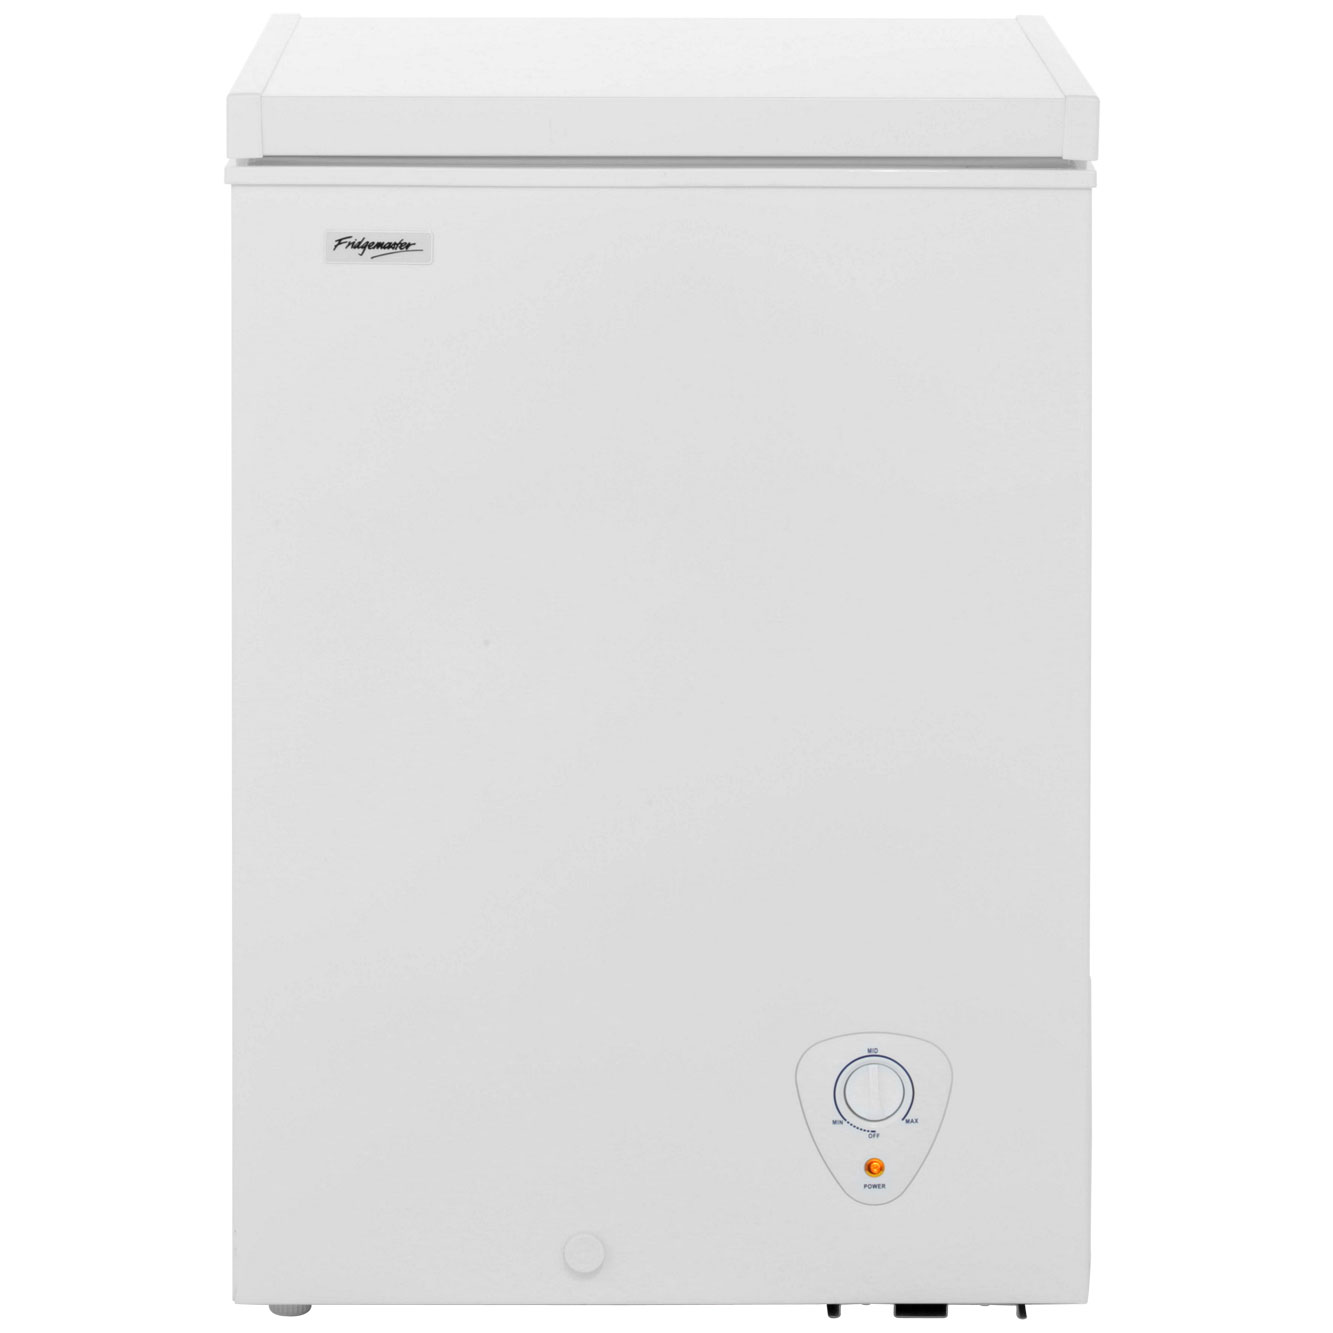 Fridgemaster MCF98 Free Standing Chest Freezer in White